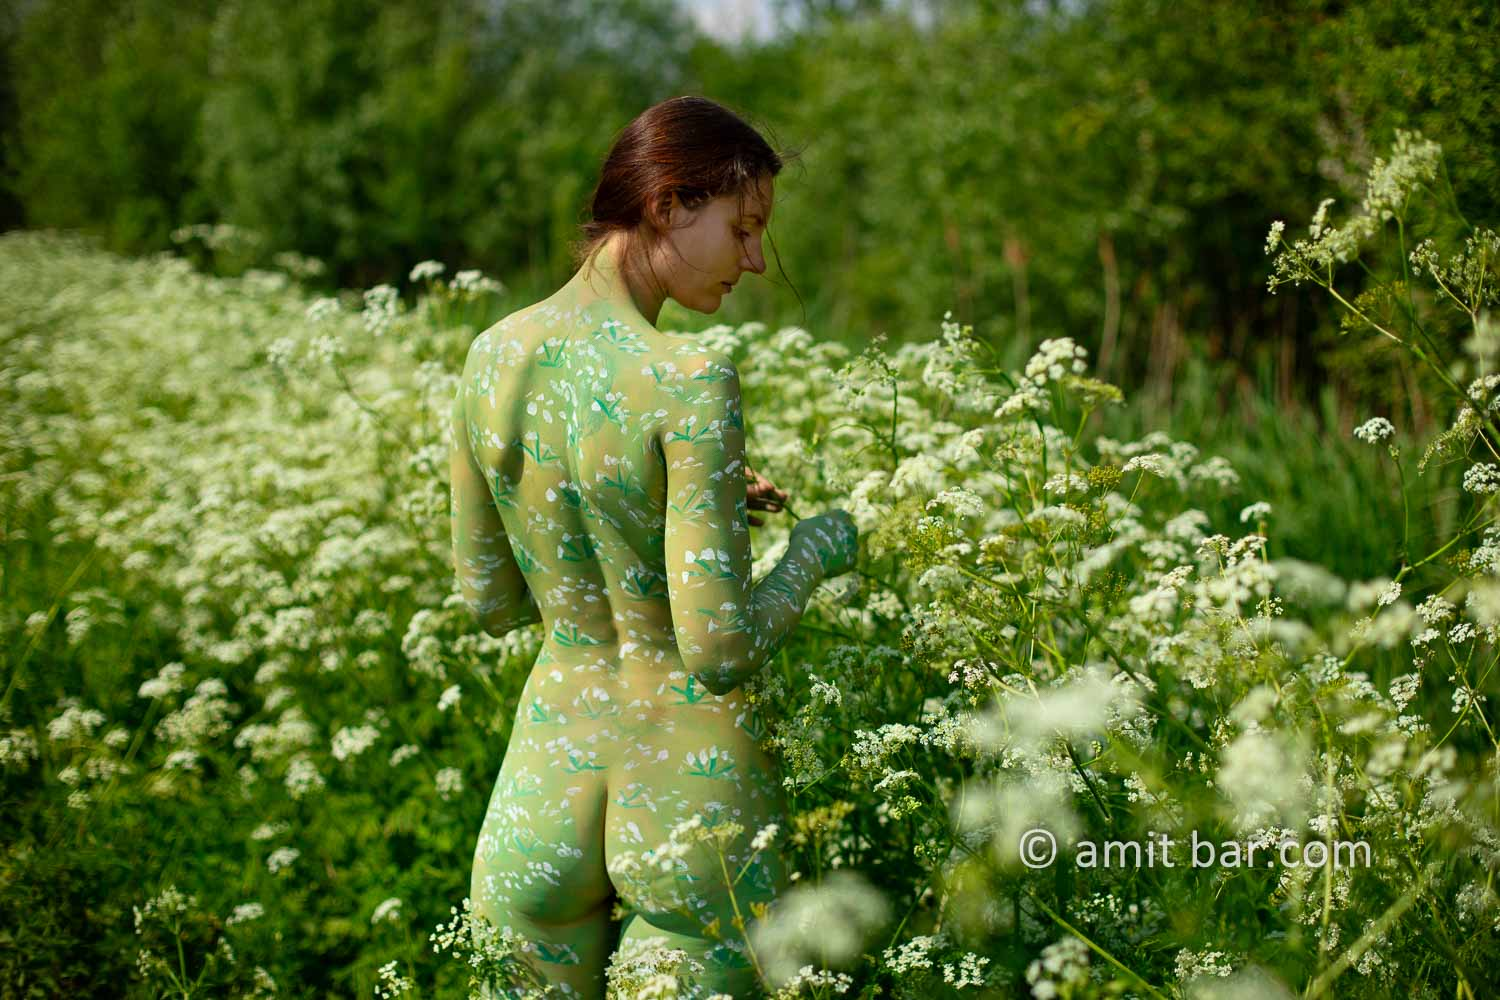 Cow parsley II: The wild plant Cow parsley inspired me to crate a body-painting on a sunny day besides my hometown.